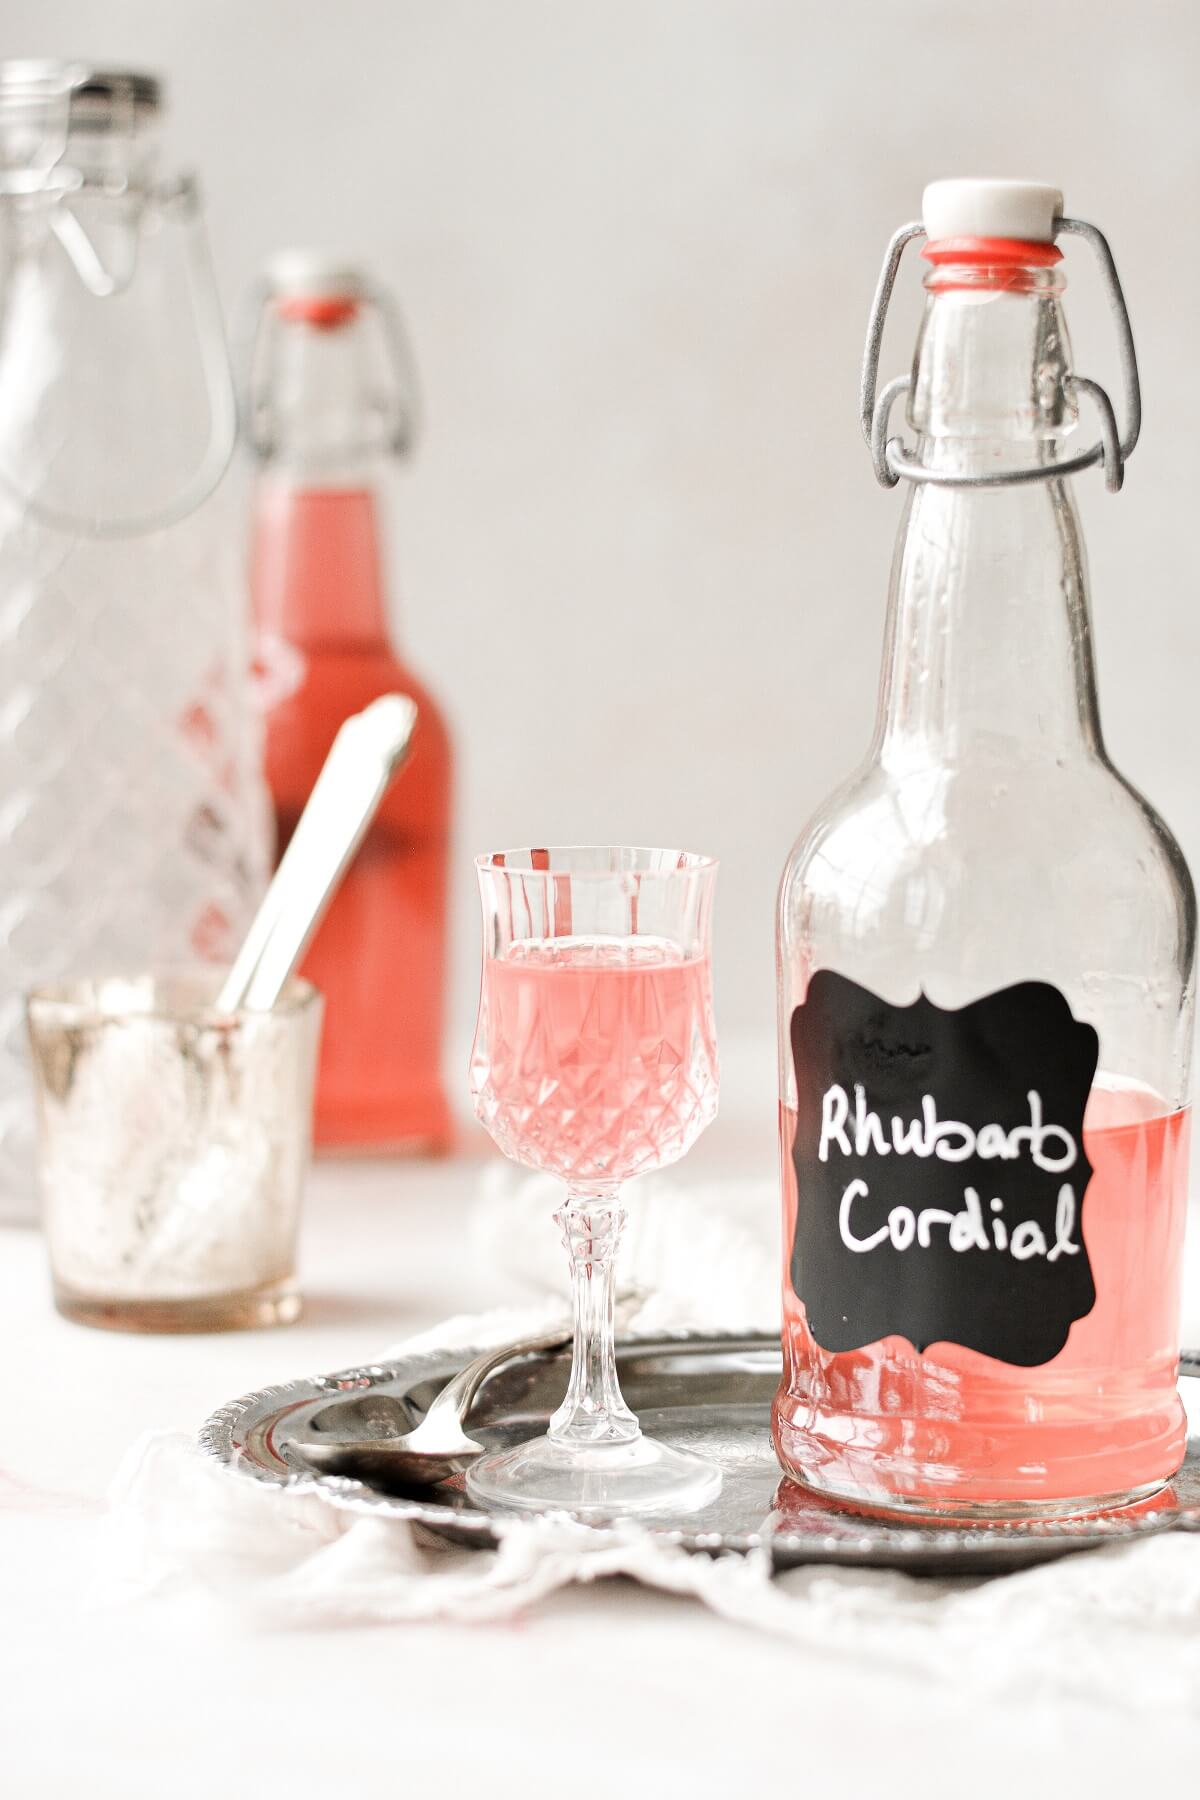 A bottle of homemade rhubarb cordial next to a small cordial glass.